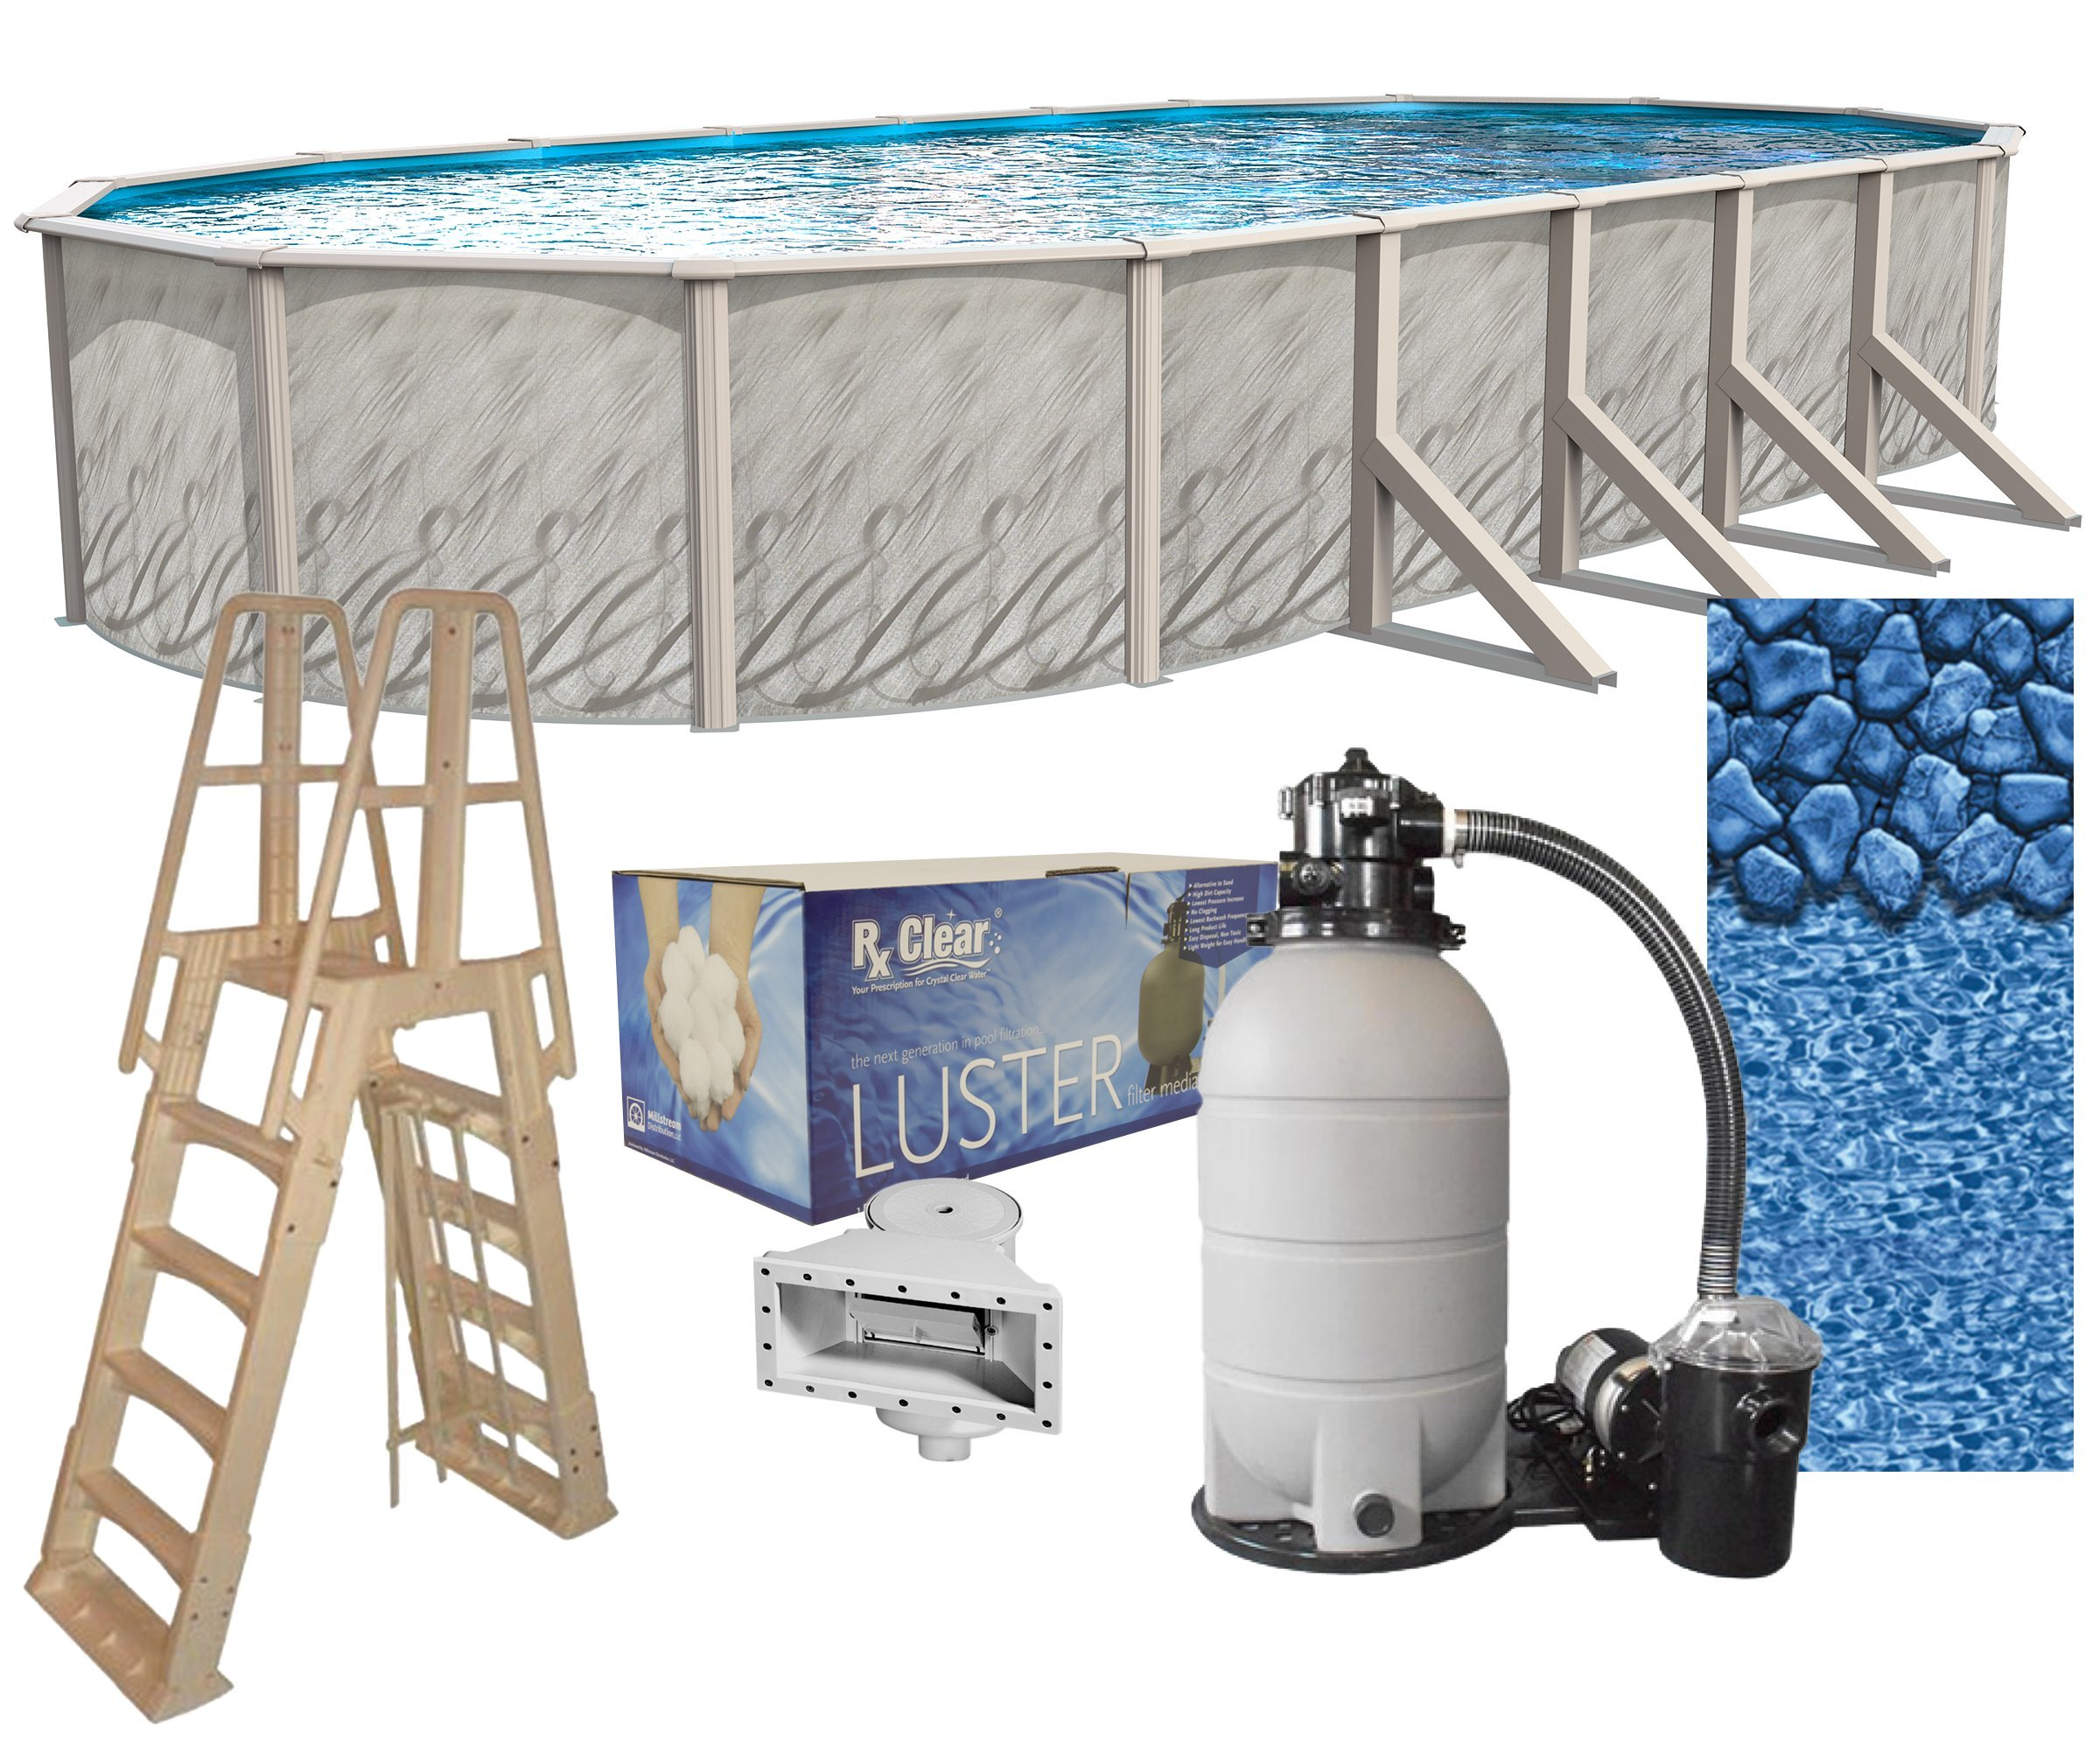 Renewed Peel and Stick Above Ground Pool Cove Blue Wave 48 in 15 Pack